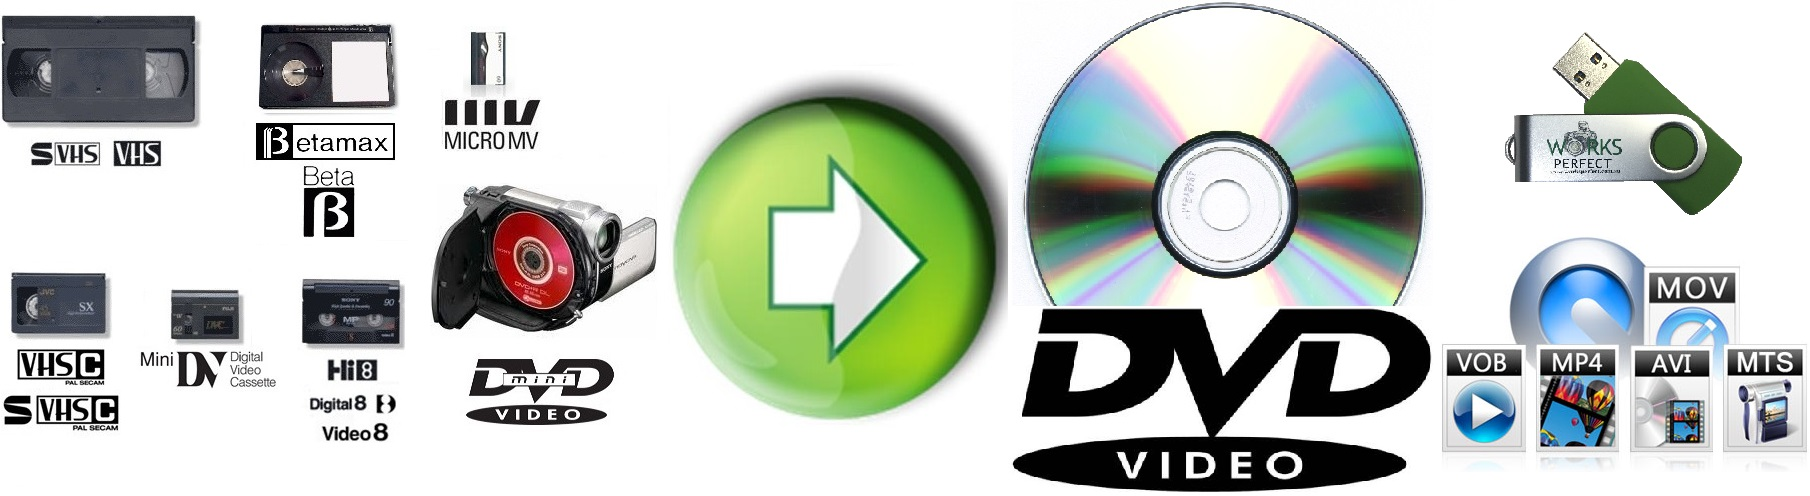 VHS to DVD Sydney - VCR Tapes to Digital transfer service city - convert video tape to mp4 usb conversion hi8, mini dv, vhs-c, micro mv, 8mm, analog 8, hi 8, betamax, blu-ray disc